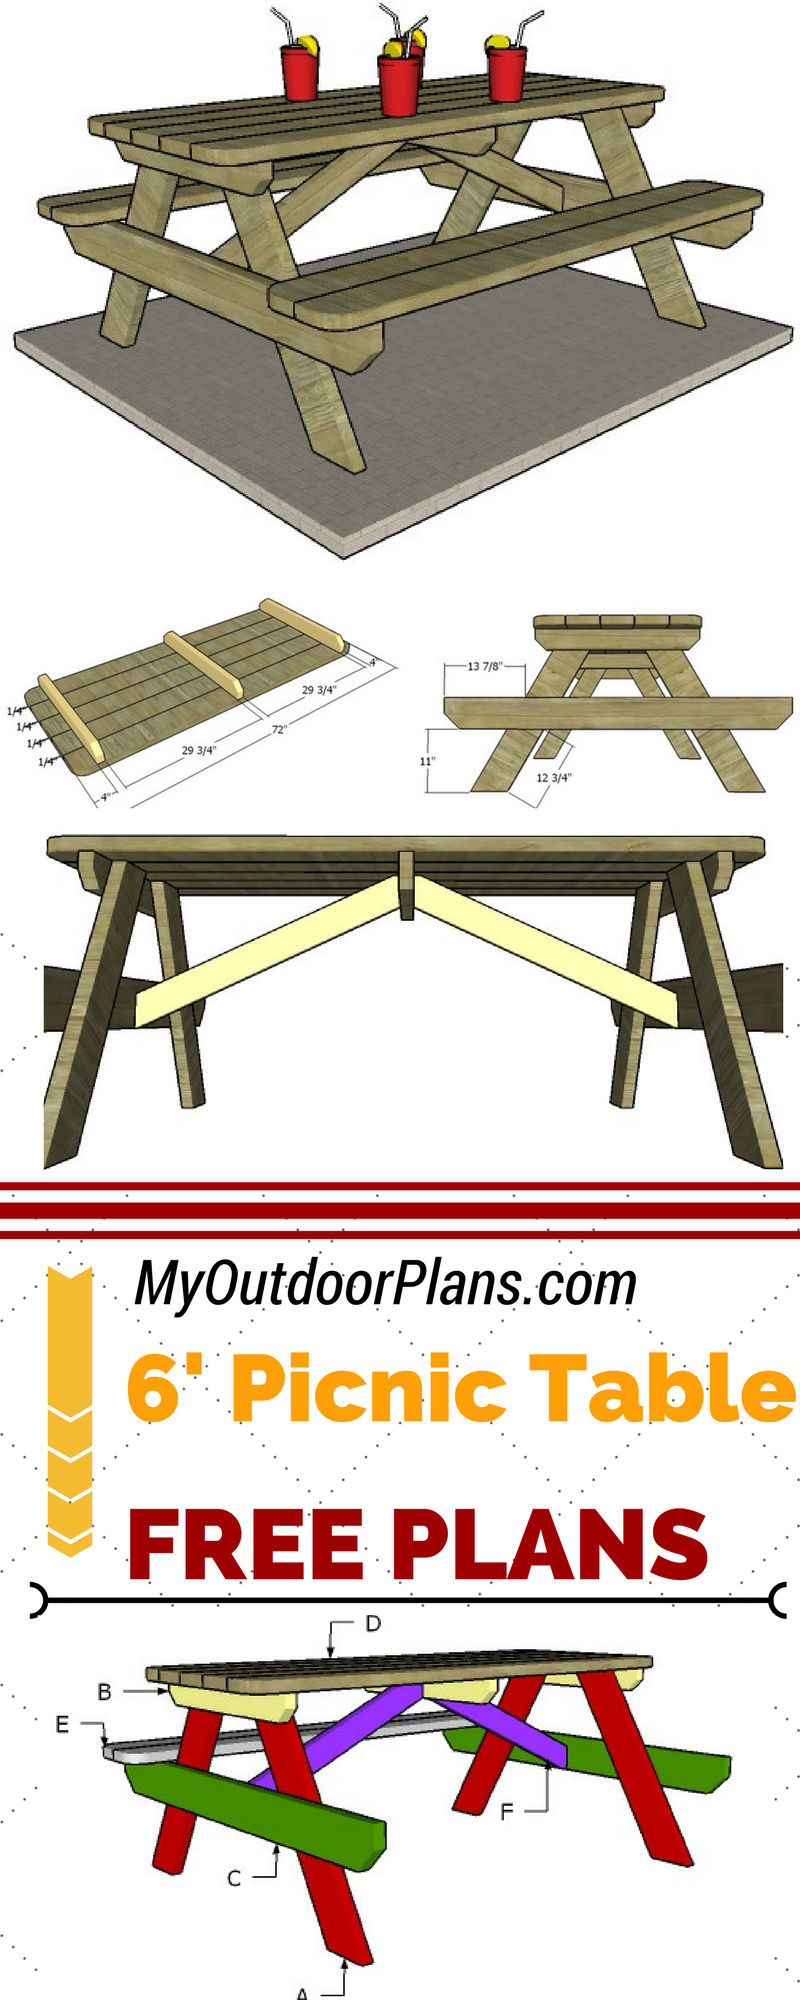 6 Foot Picnic Table Plans Diy Picnic Table Picnic Table Plans